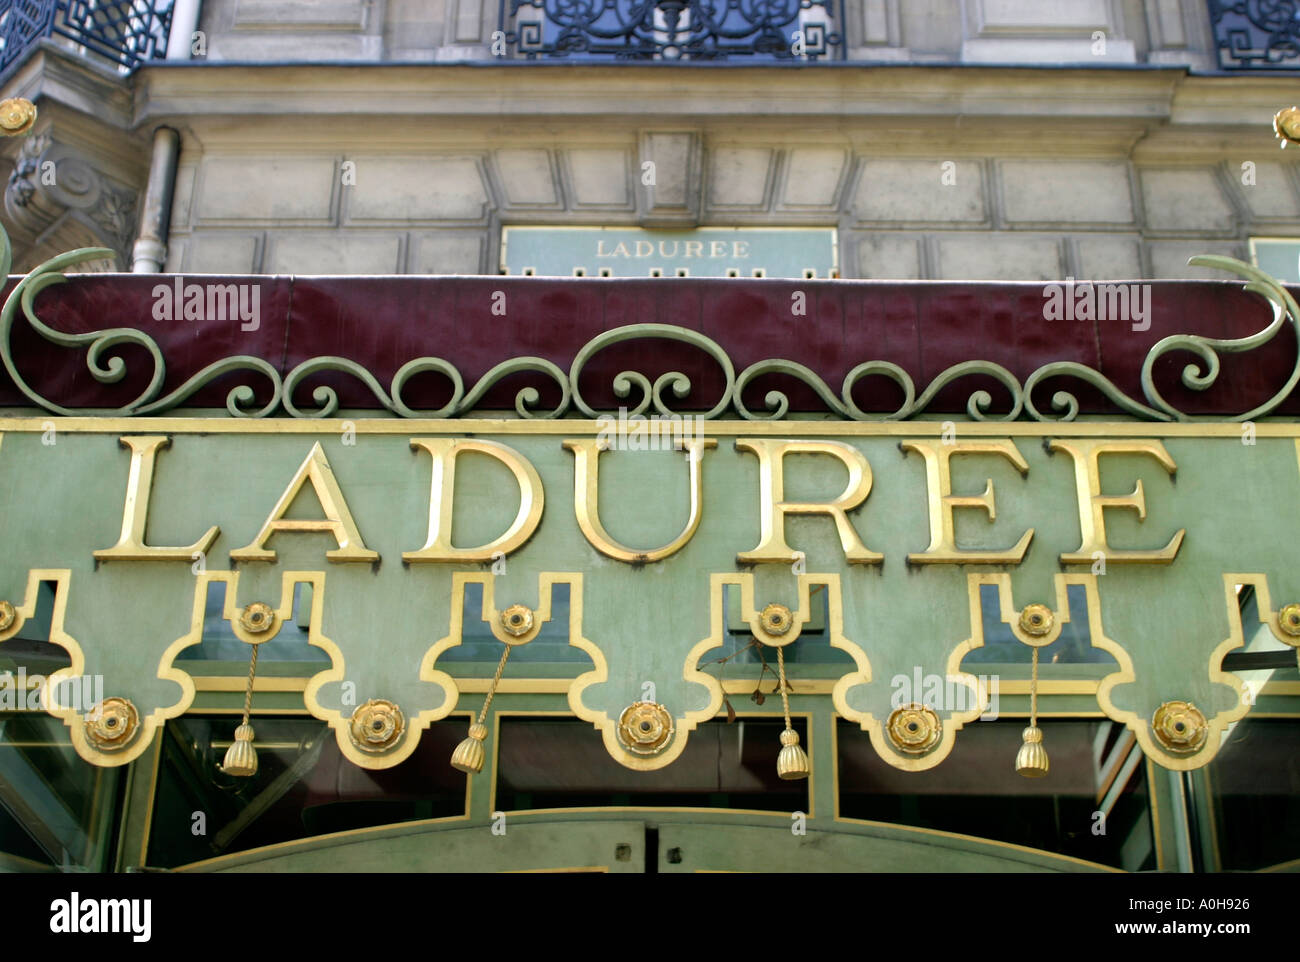 Laduree high class tearoom and patisserie in the Champs Elysees Paris France - Stock Image